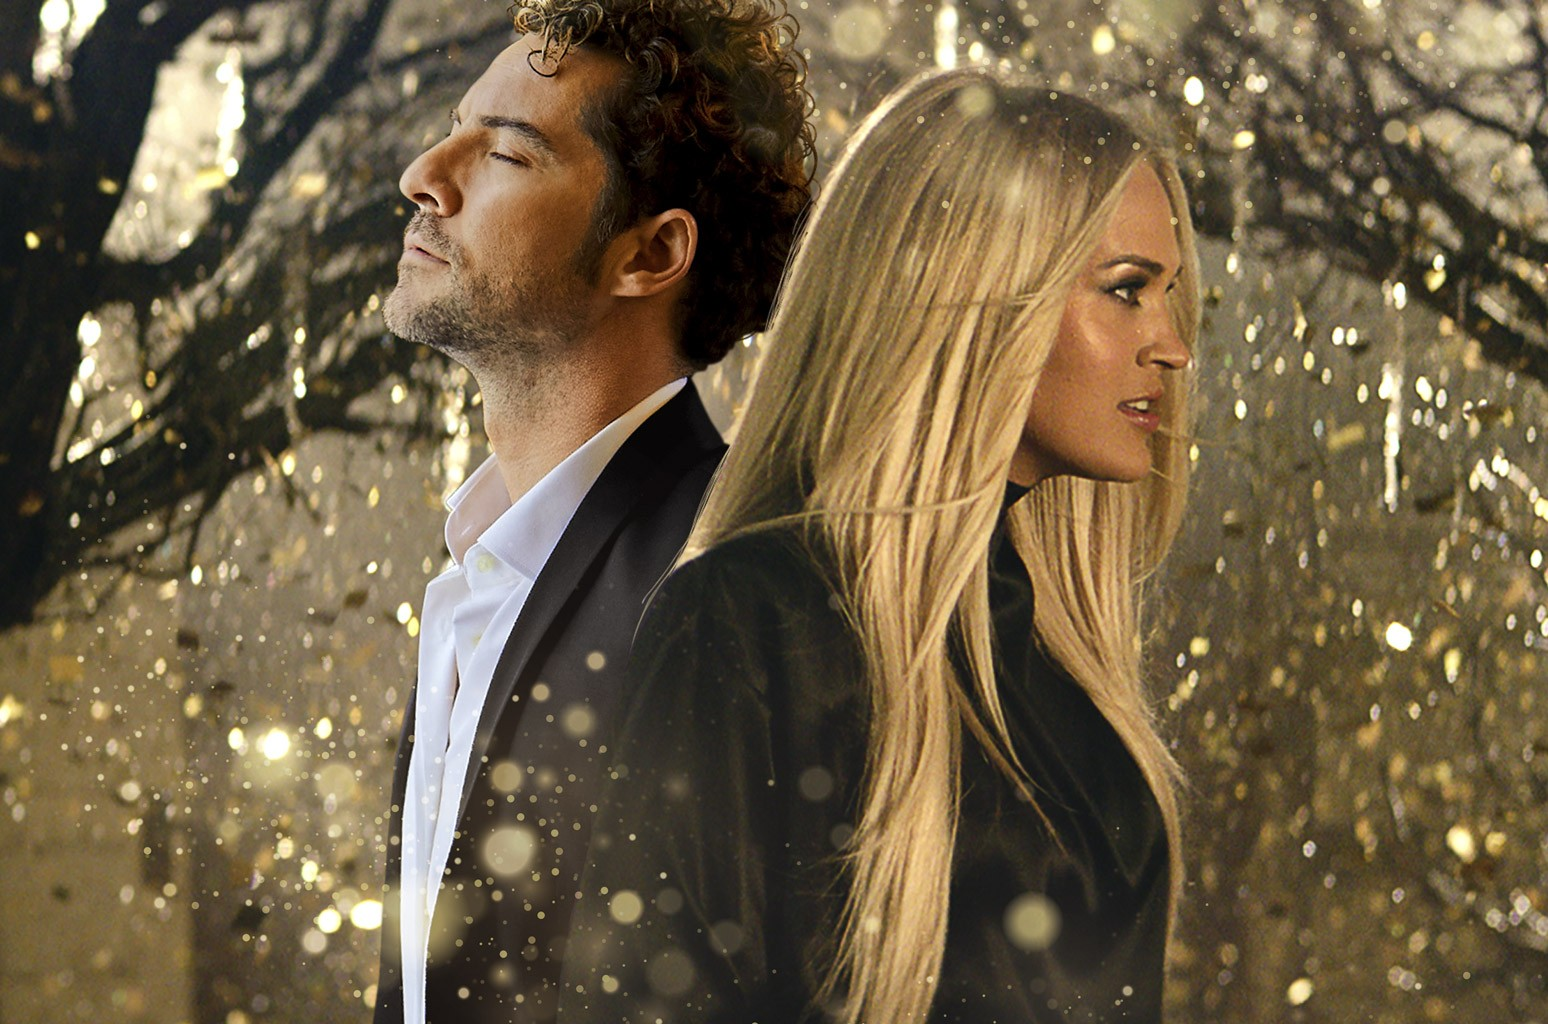 David Bisbal and Carrie Underwood